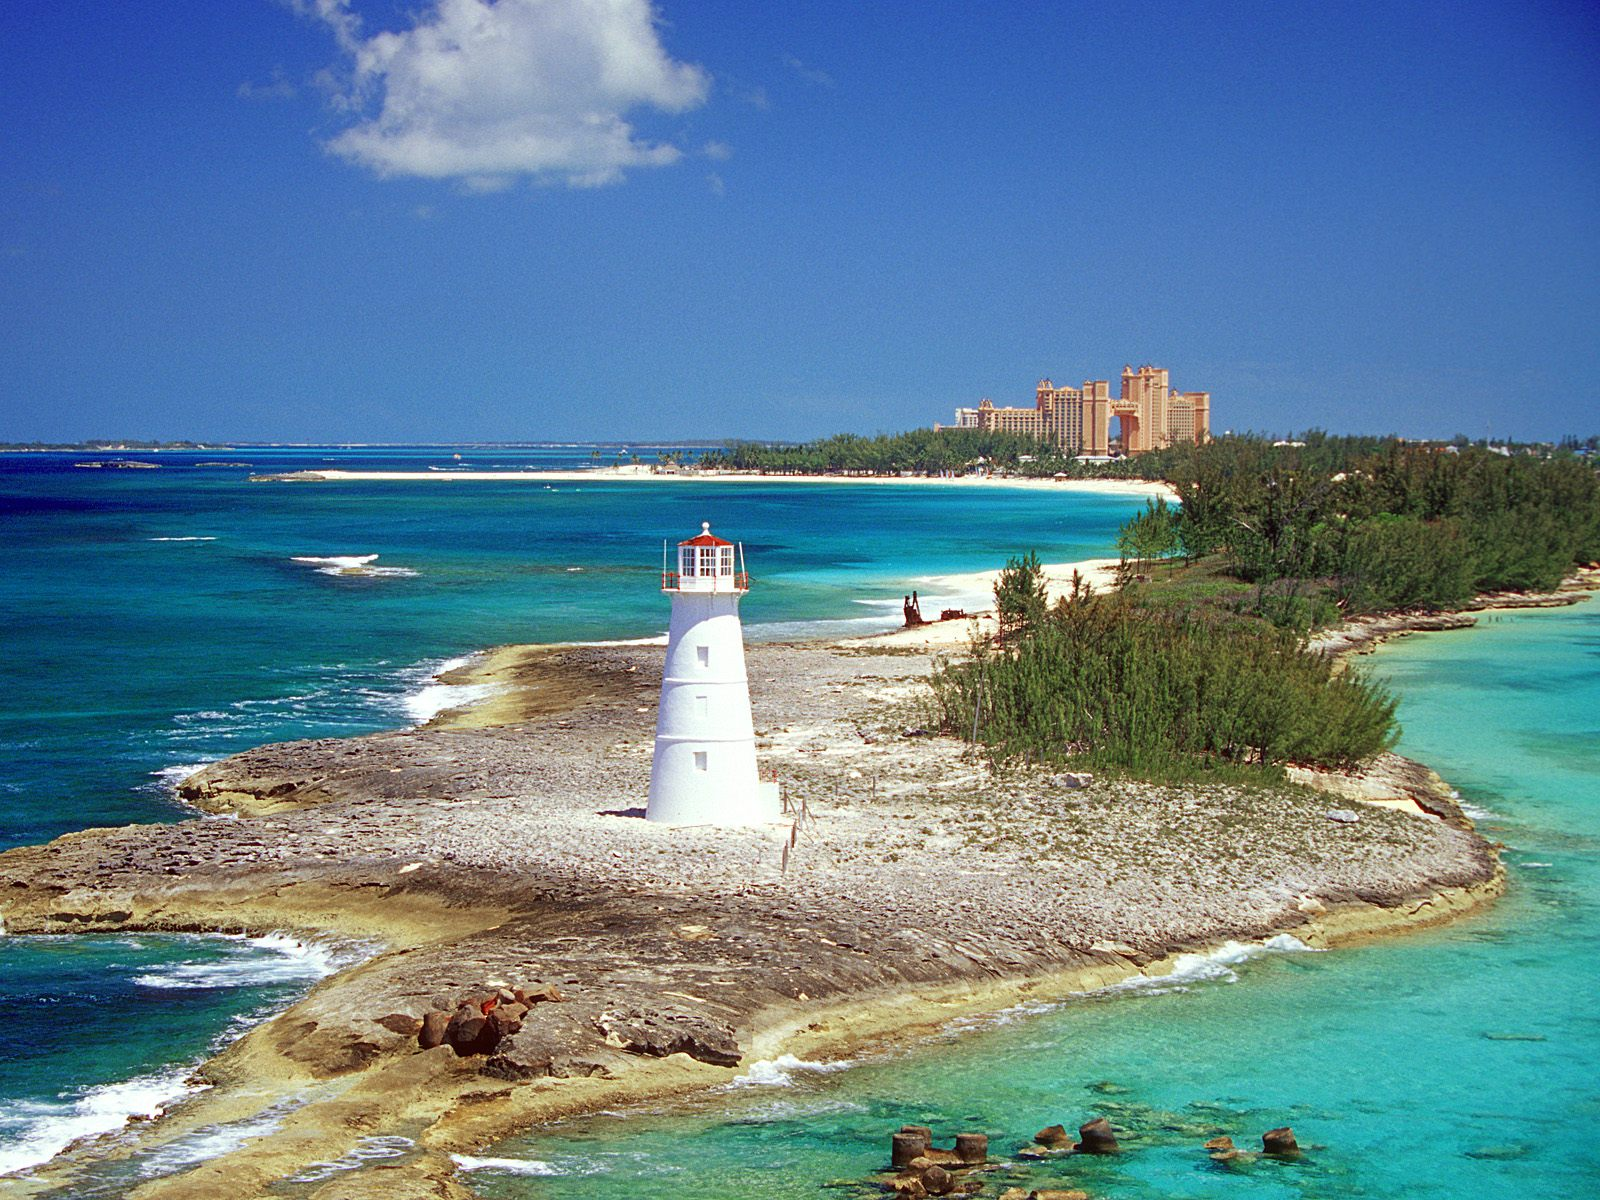 Island Nassau Bahamas Wallpaper High Quality WallpapersWallpaper 1600x1200